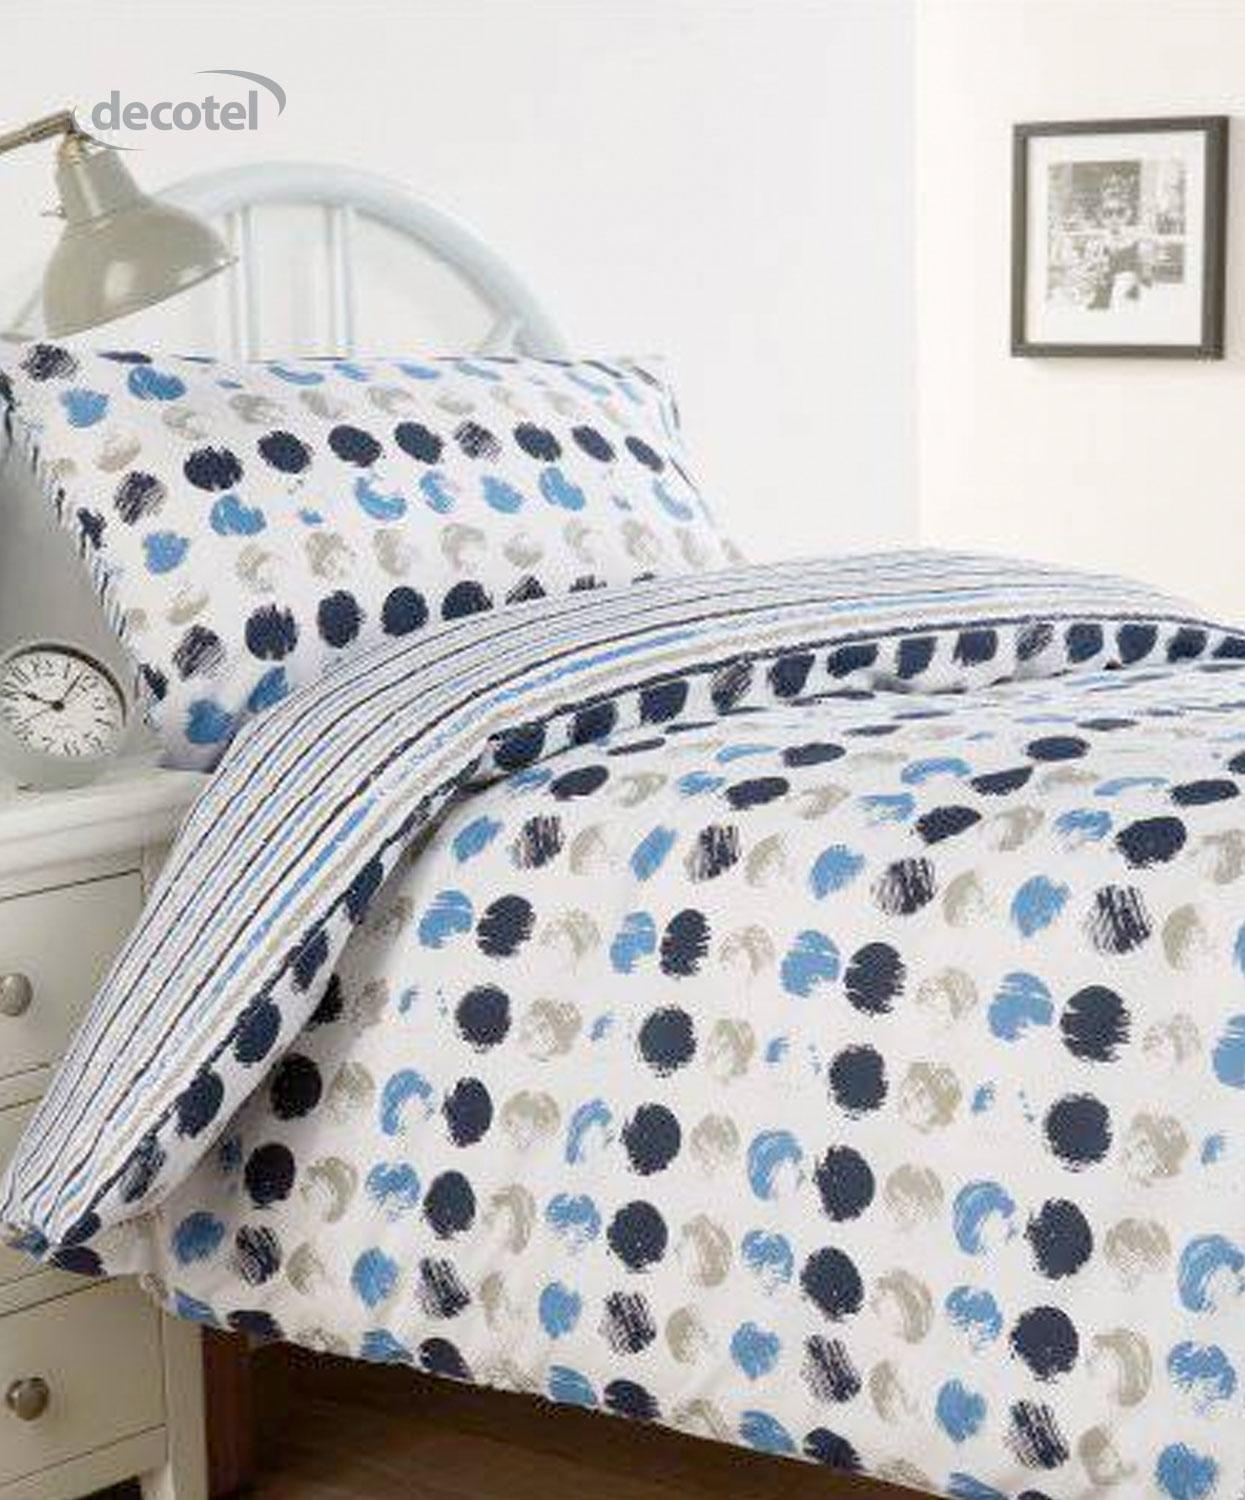 Harrow duvet cover in blue